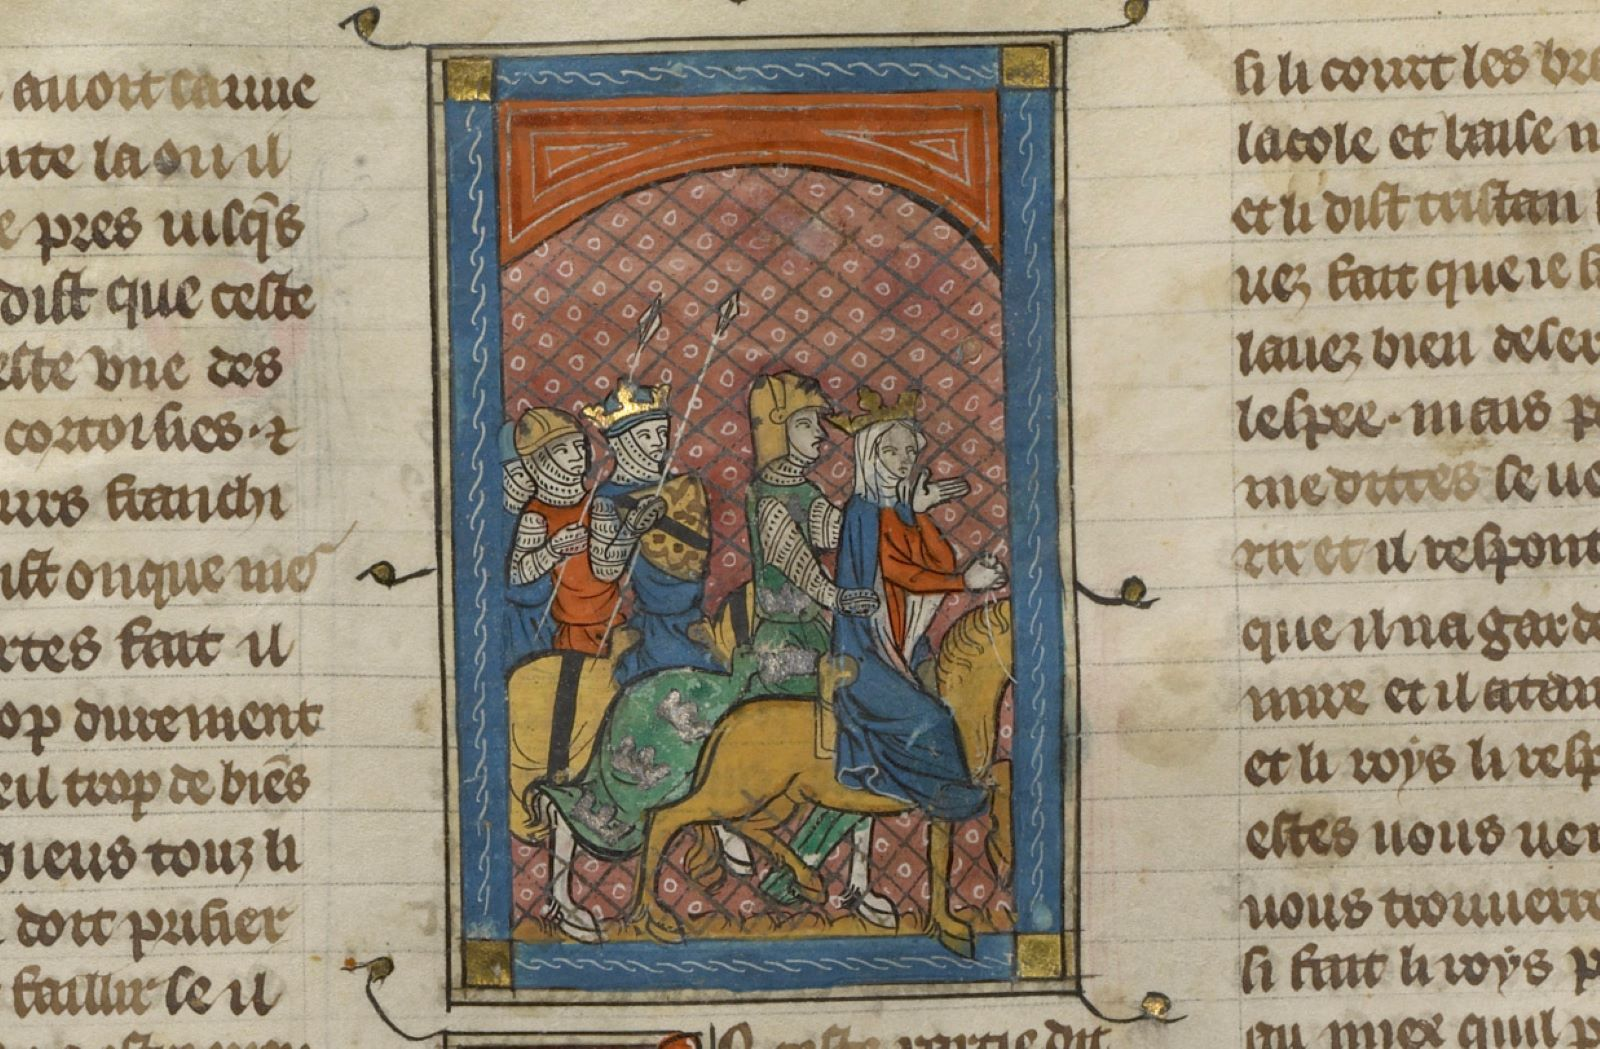 Illuminated drawing of medieval knights on horseback, with one woman riding on a horse in front of a knight